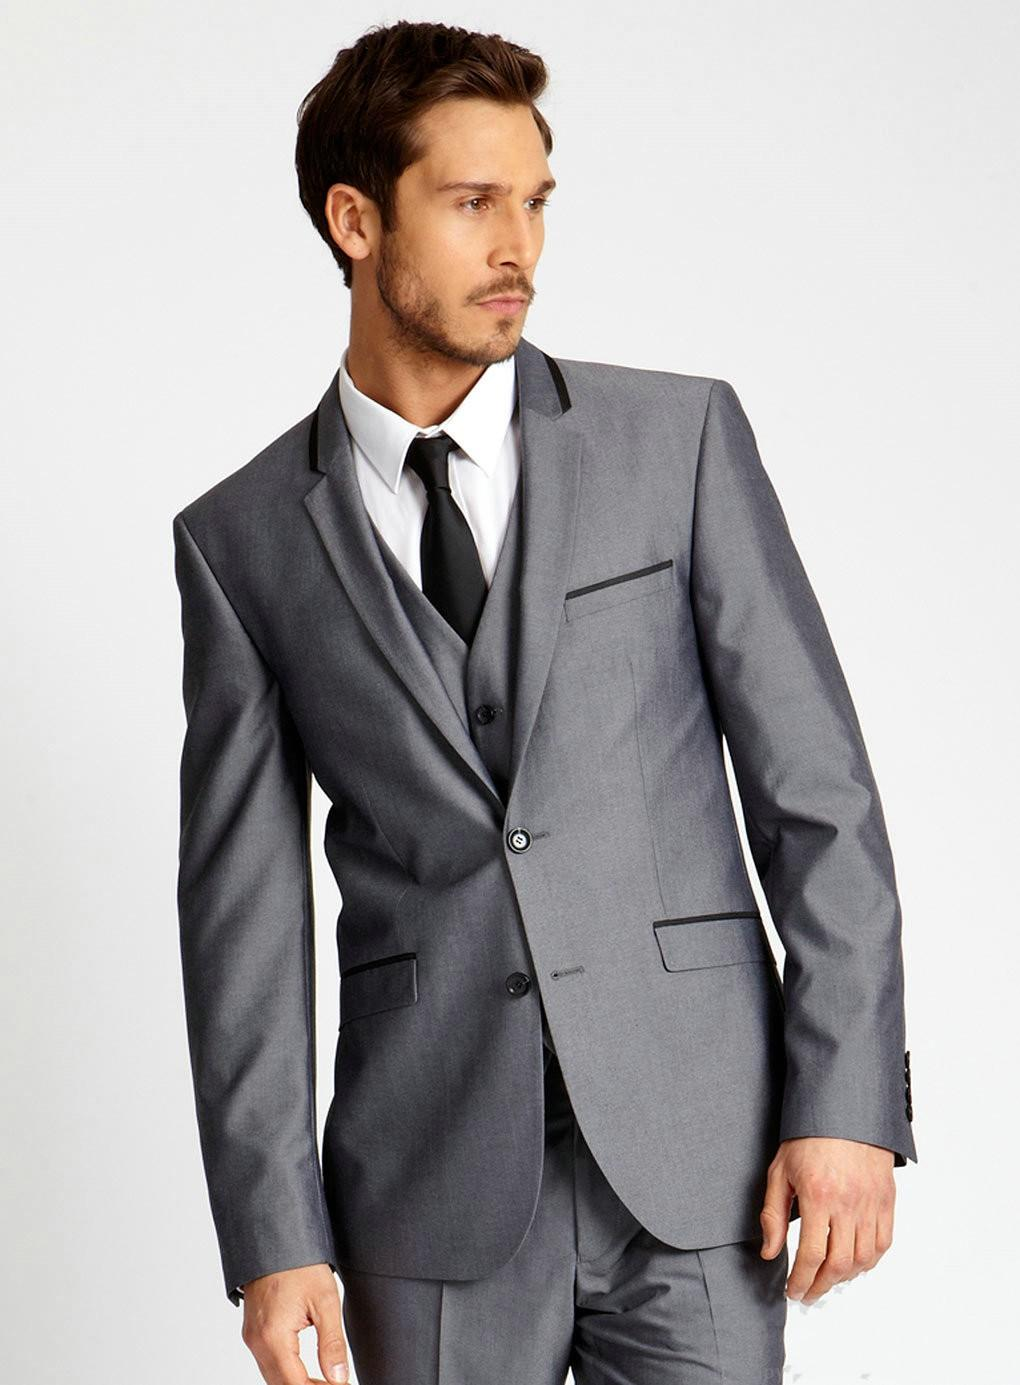 Silver Grey Suit For Wedding Dress Yy